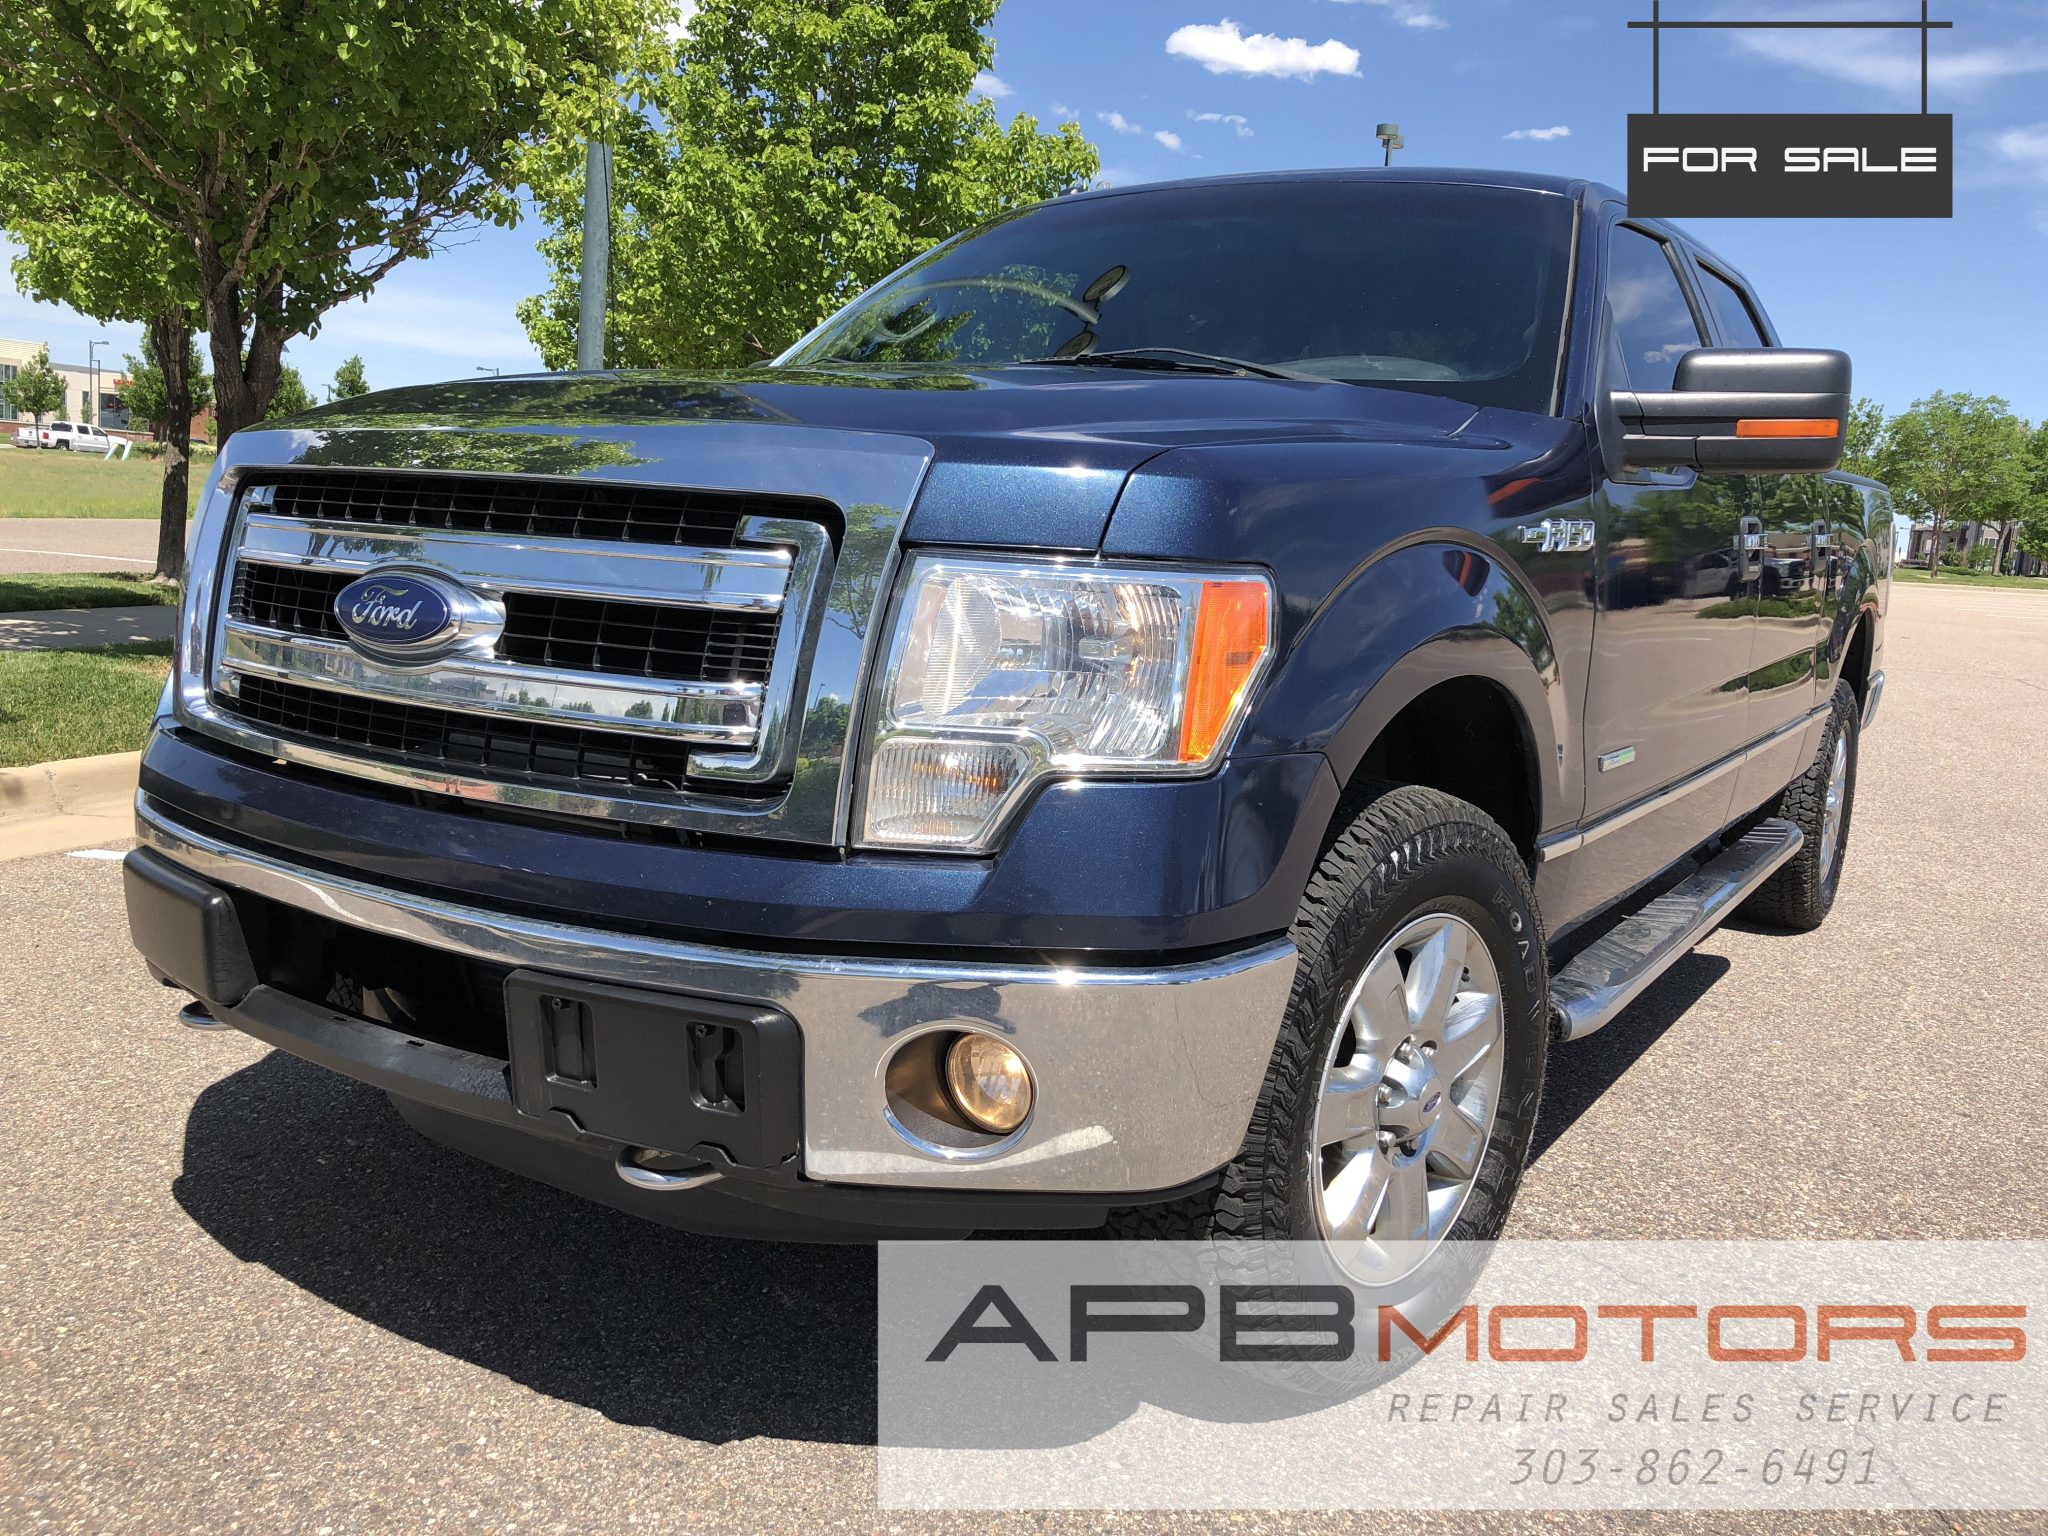 2013 Ford F 150 Xlt 44 4dr Supercrew Styleside 55 Ft Sb Sold F150 Cruise Control The Front Windshield Is In Excellent Condition Paint Great Shape And Interior Was Well Maintained Extra